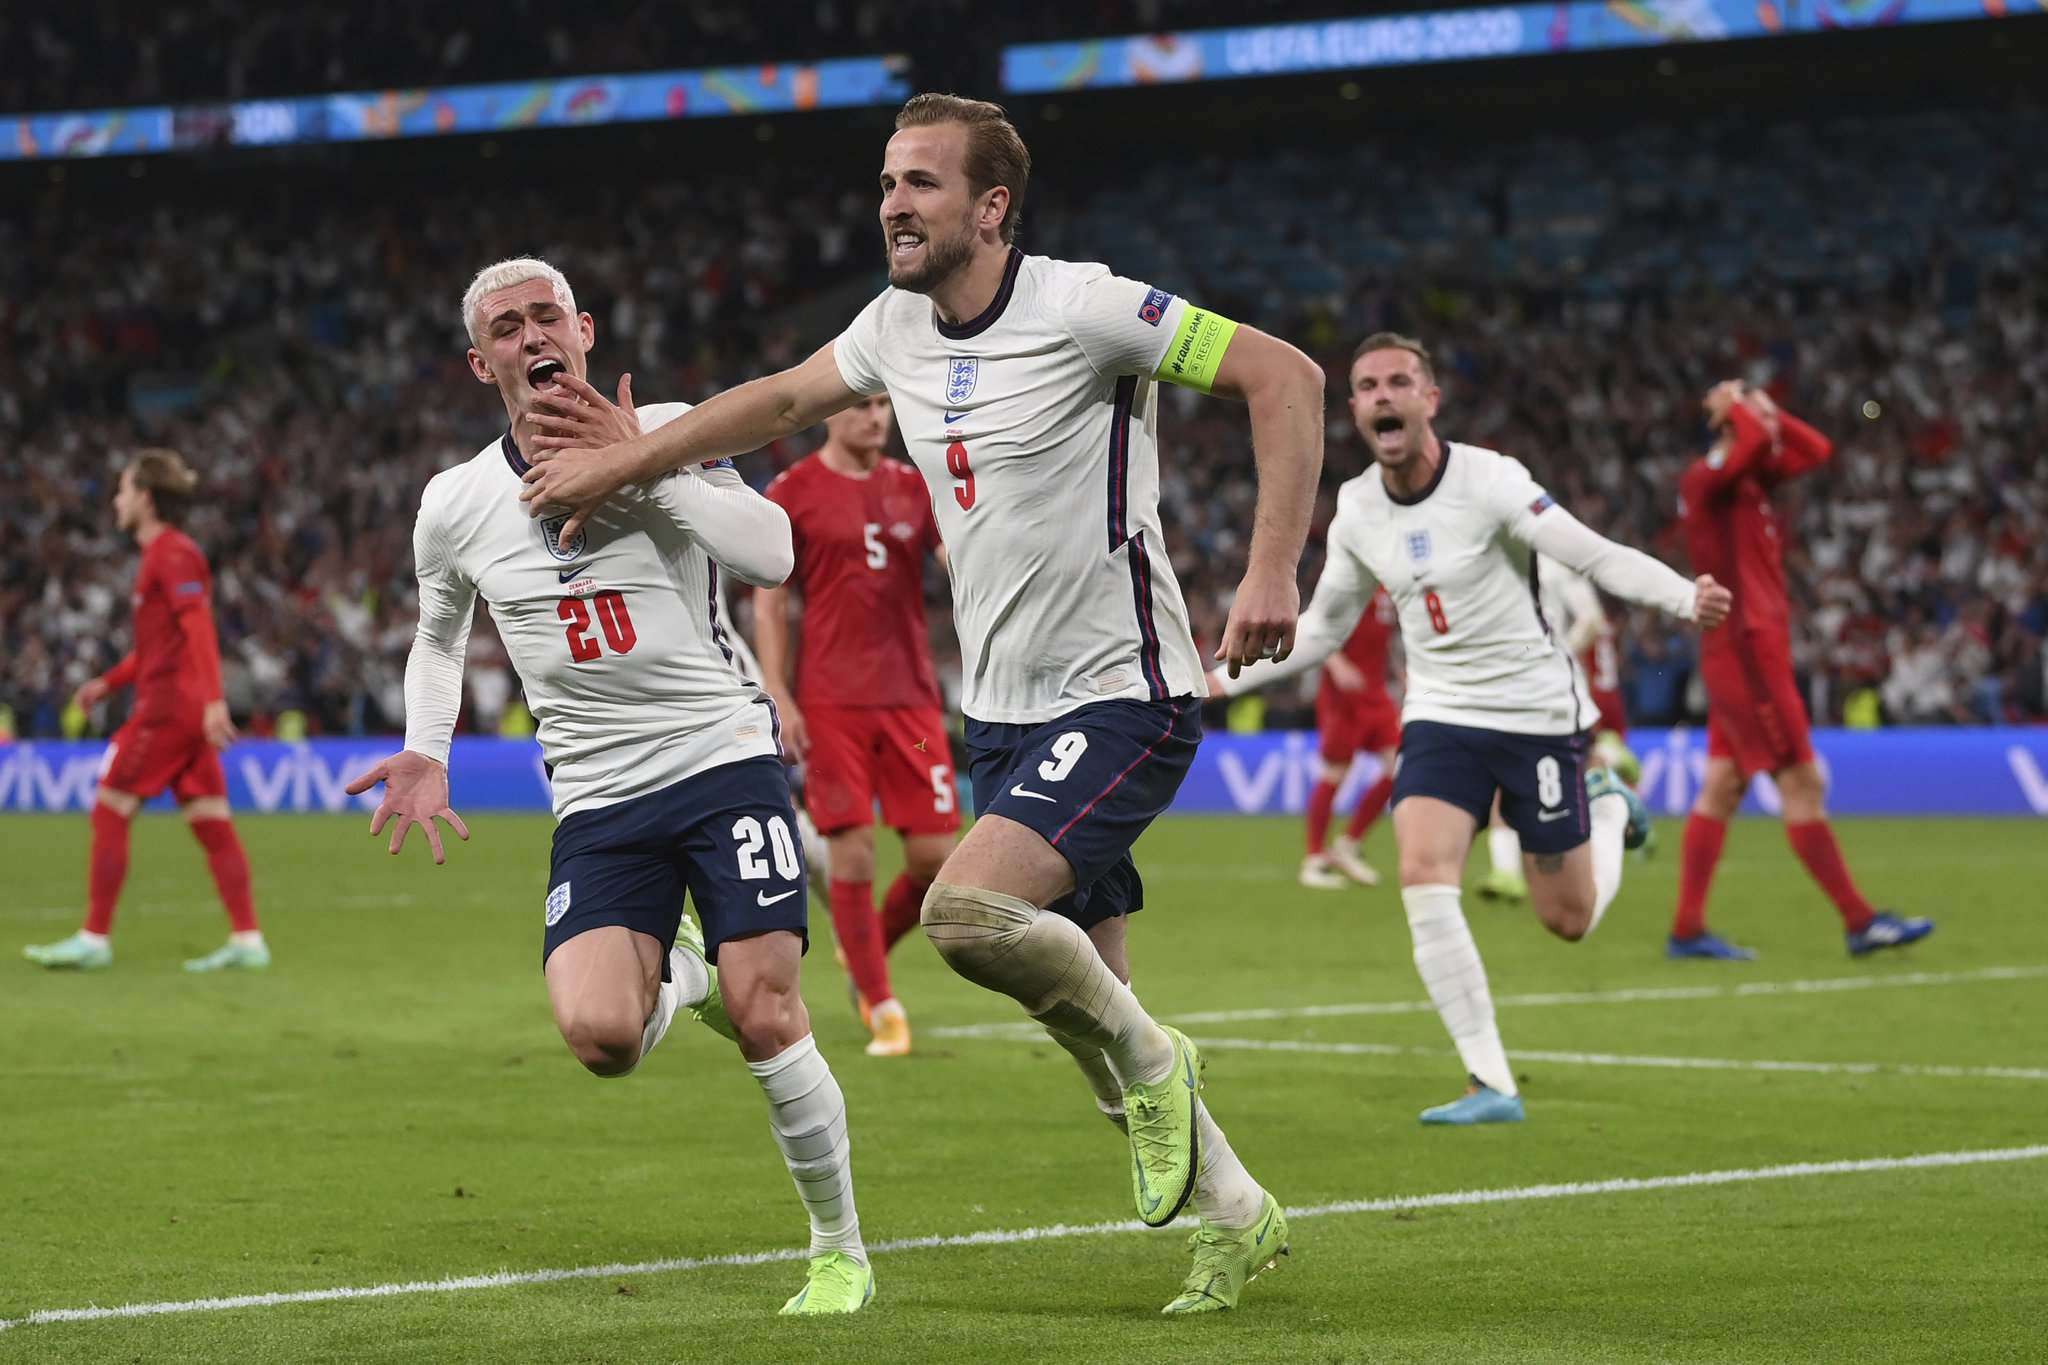 England's Harry Kane, right, celebrates with his teammates after scoring his side's second goal during the Euro 2020 soccer semifinal match between England and Denmark at Wembley stadium in London, Wednesday.